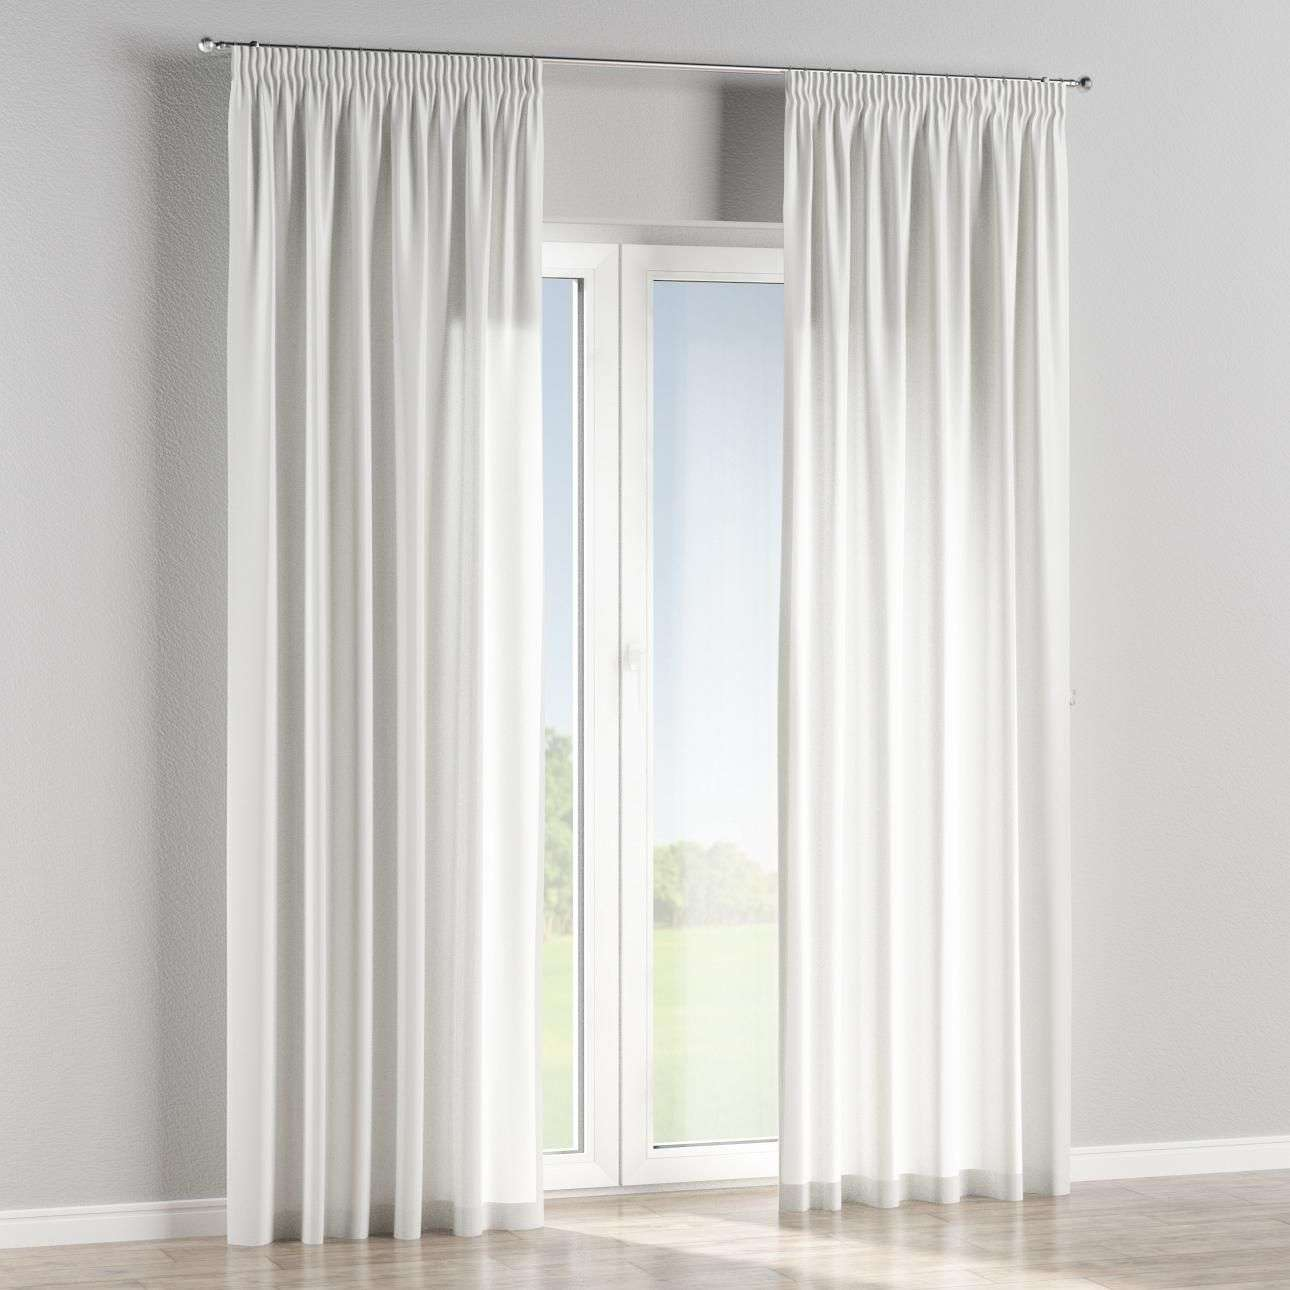 Pencil pleat curtains in collection Cardiff, fabric: 136-21